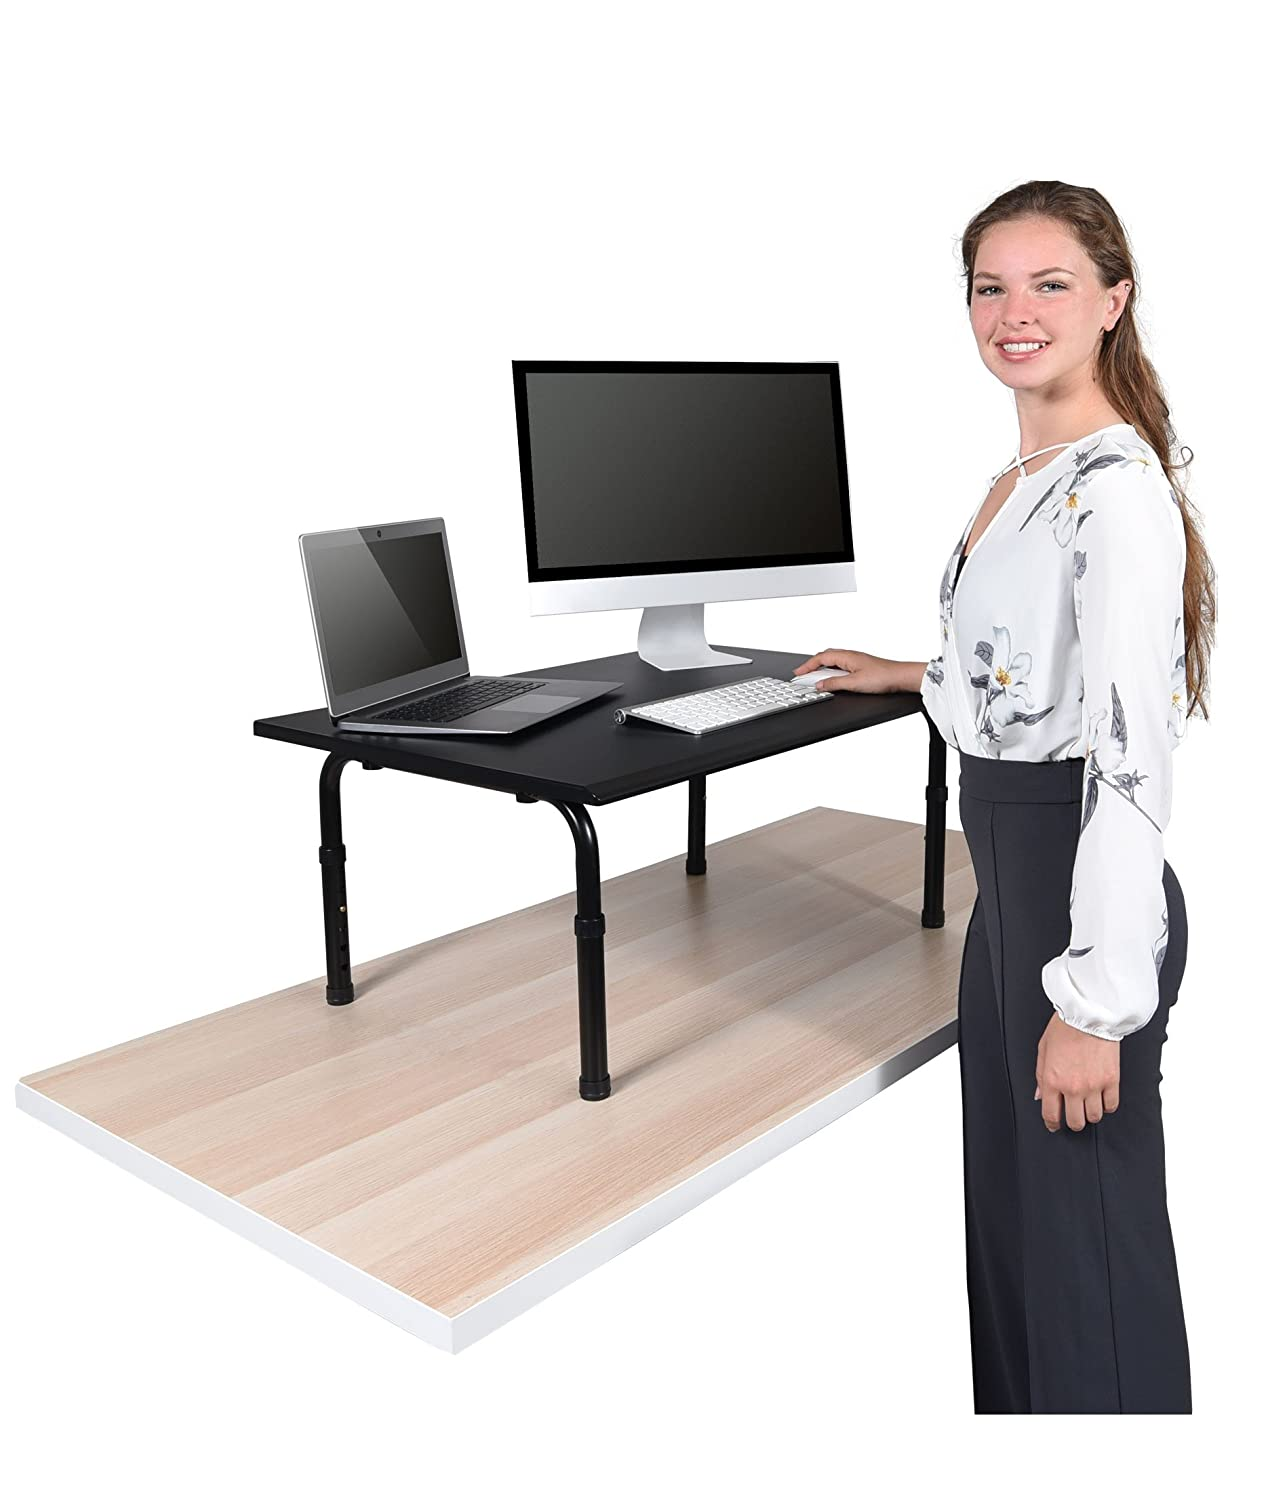 Sensational 32 Wide Adjustable Height Standing Desk Convert Your Desk To A Standing Desk Download Free Architecture Designs Crovemadebymaigaardcom